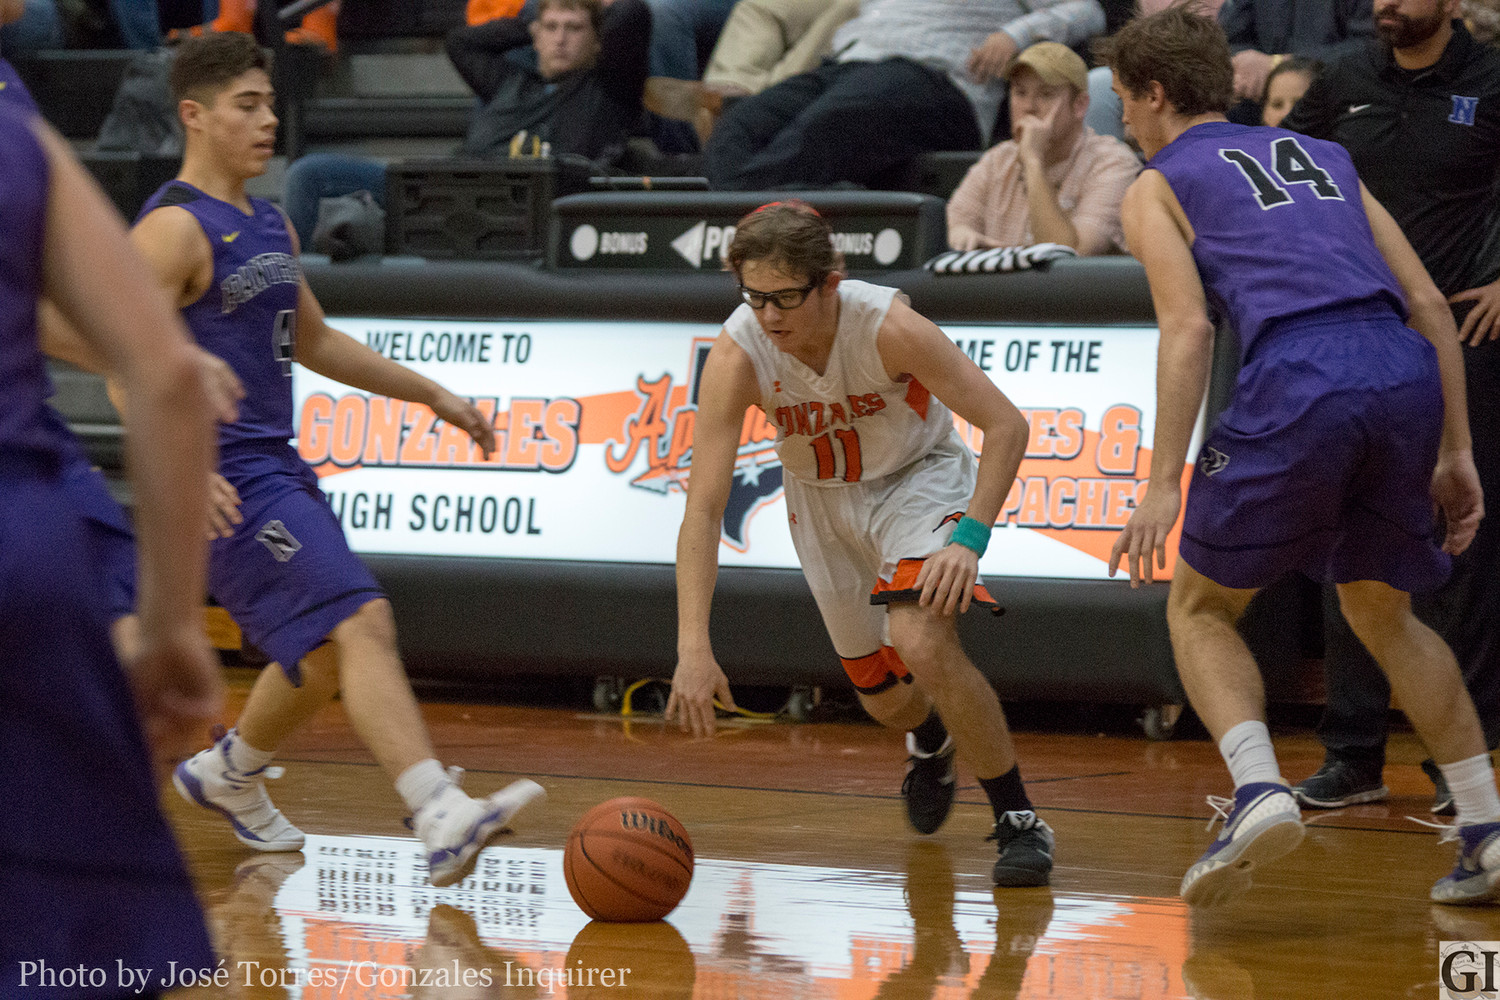 Mason Richter (11) dribbles through defenders in Gonzales' 66-50 loss to Navarro last Friday. Richter ended the night with a team-leading 12 points.